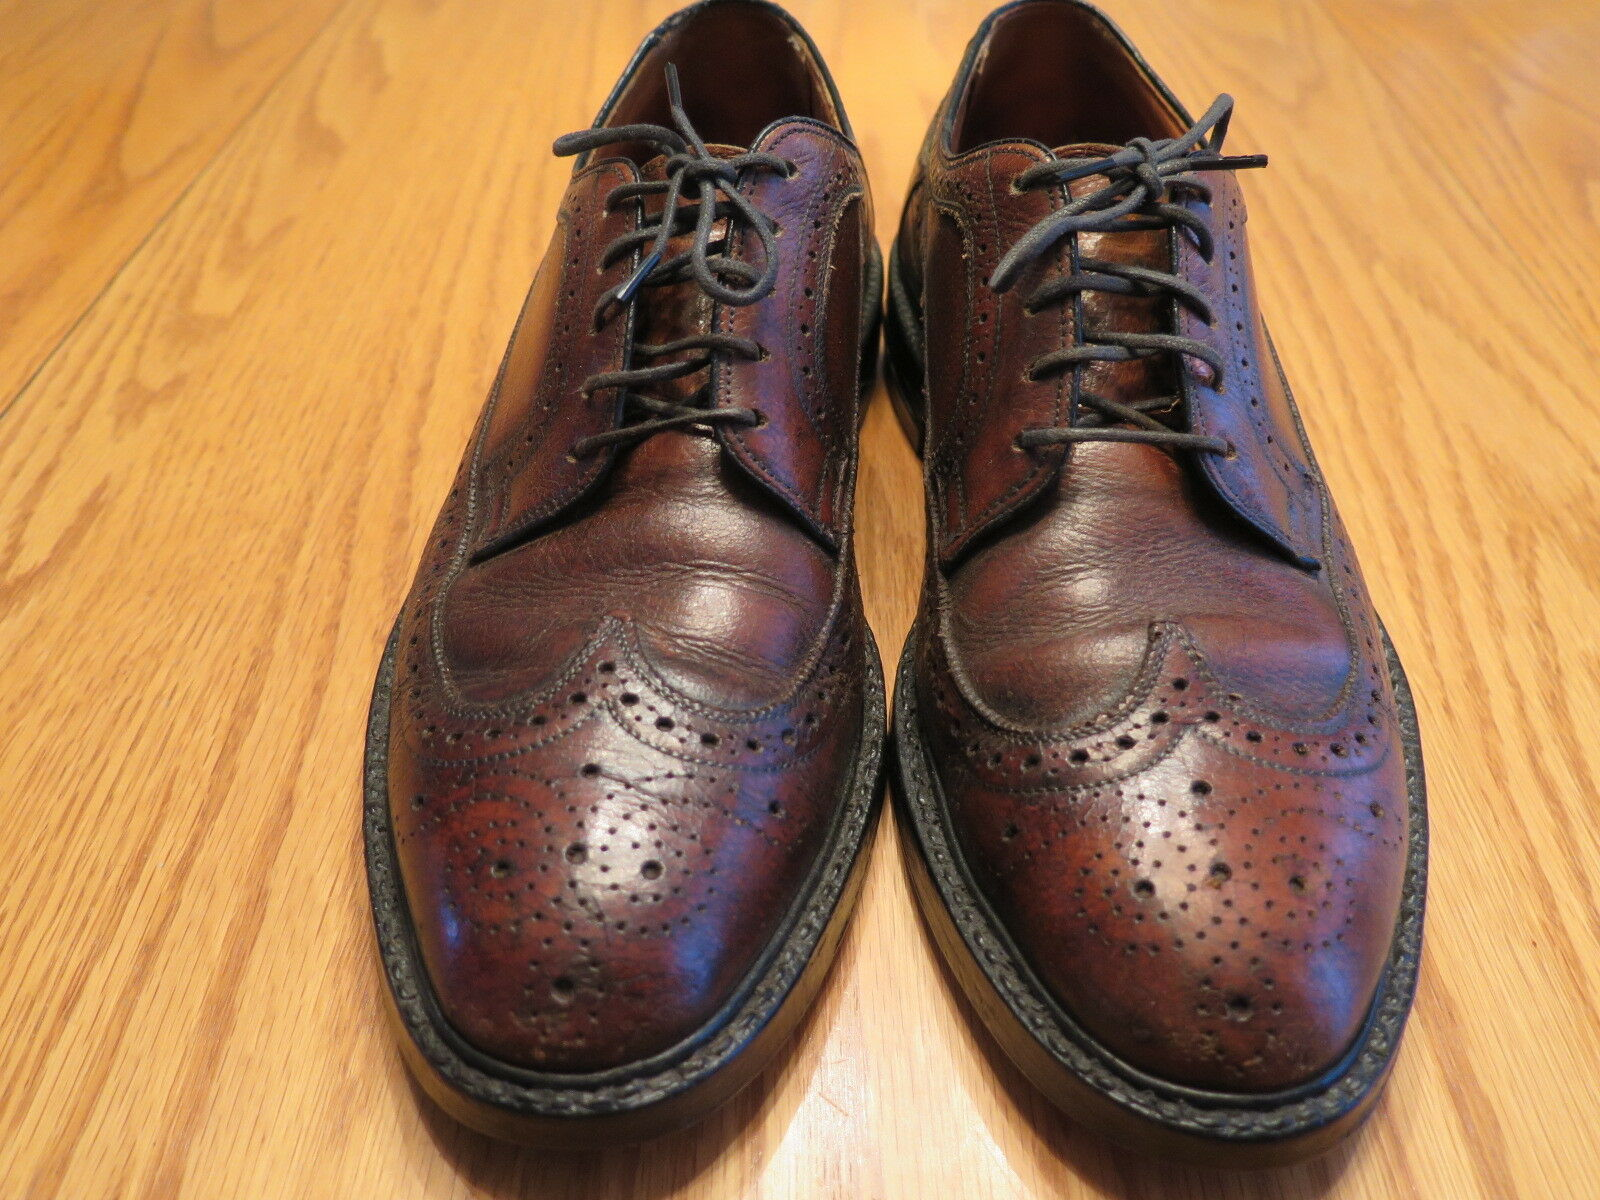 Vtg Nunn Bush Lace Up Ankle Fashioned Wing Tip Wingtip shoes  Brown  Size 7.5D